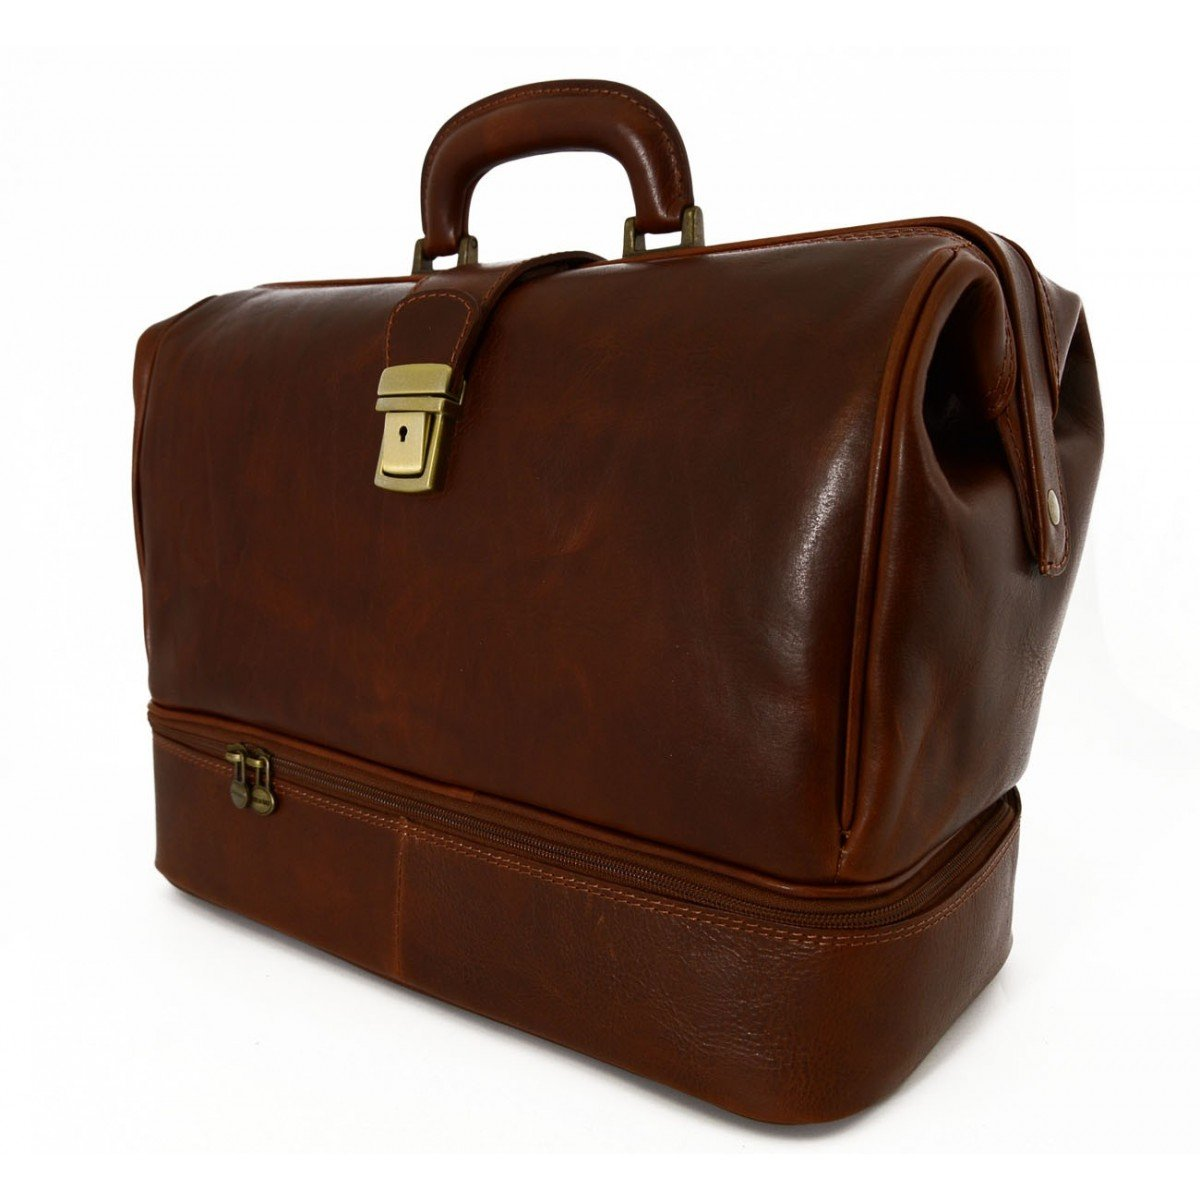 Made In Italy Genuine Leather Medical Bag, Double Bottom Color Brown - Business Bag B014T6GIDI